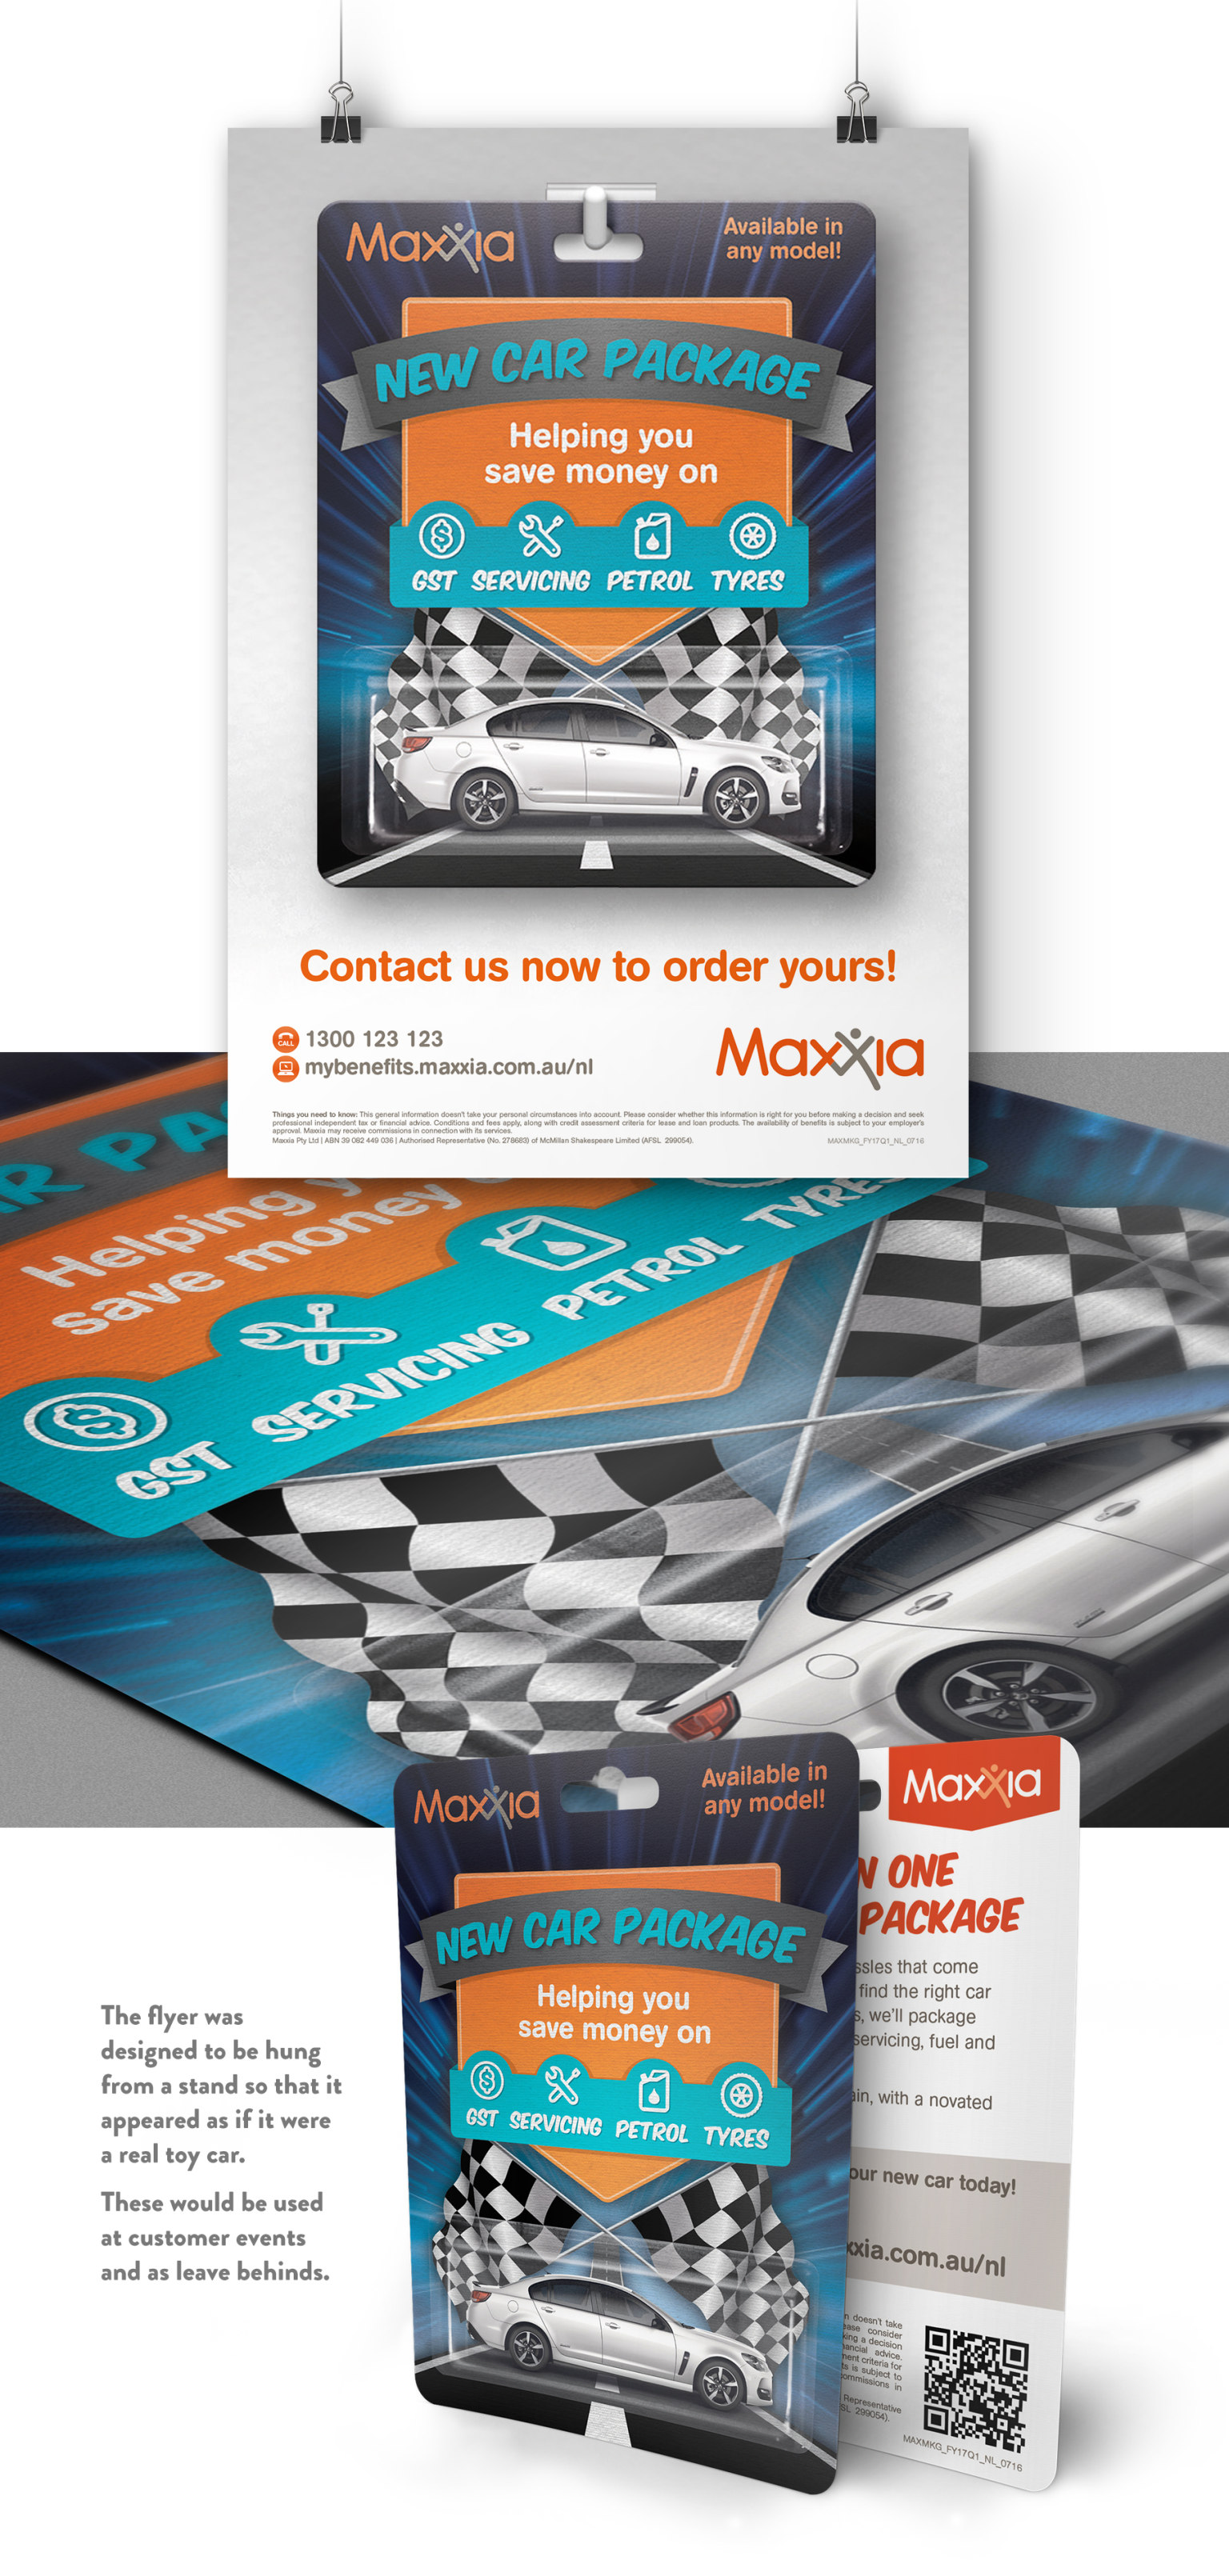 Maxxia Marketing Campaigns